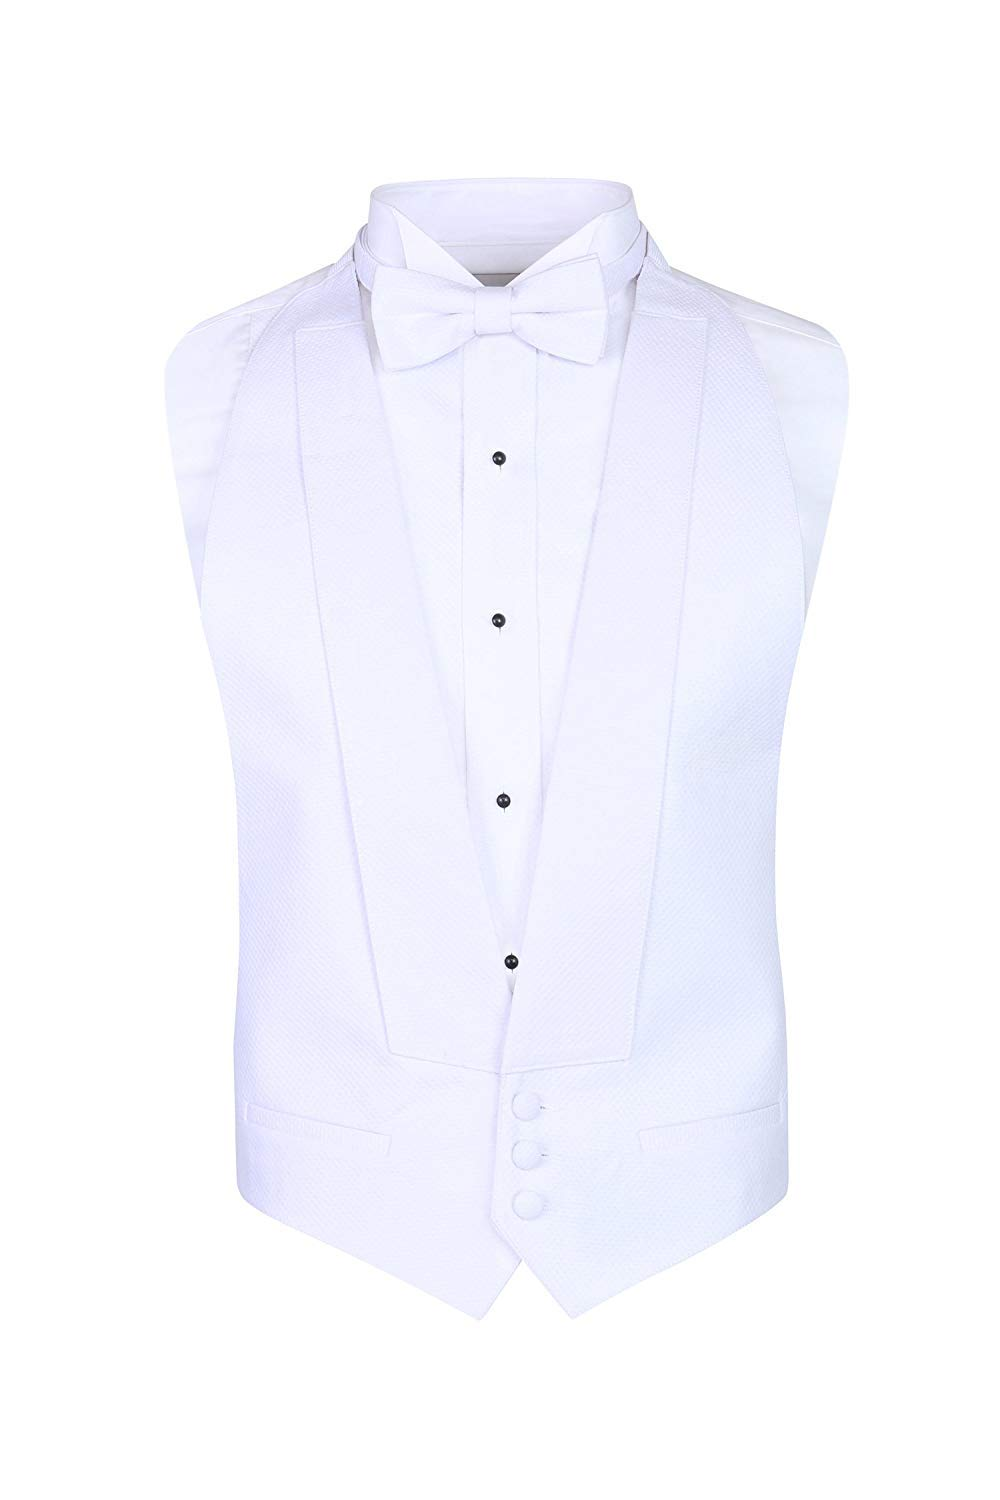 S.H. Churchill & Co. White Pique Formal Vest & Pre Tied Bow Tie - Tailcoat Waistcoat (FITALL, White) by S.H. Churchill & Co.